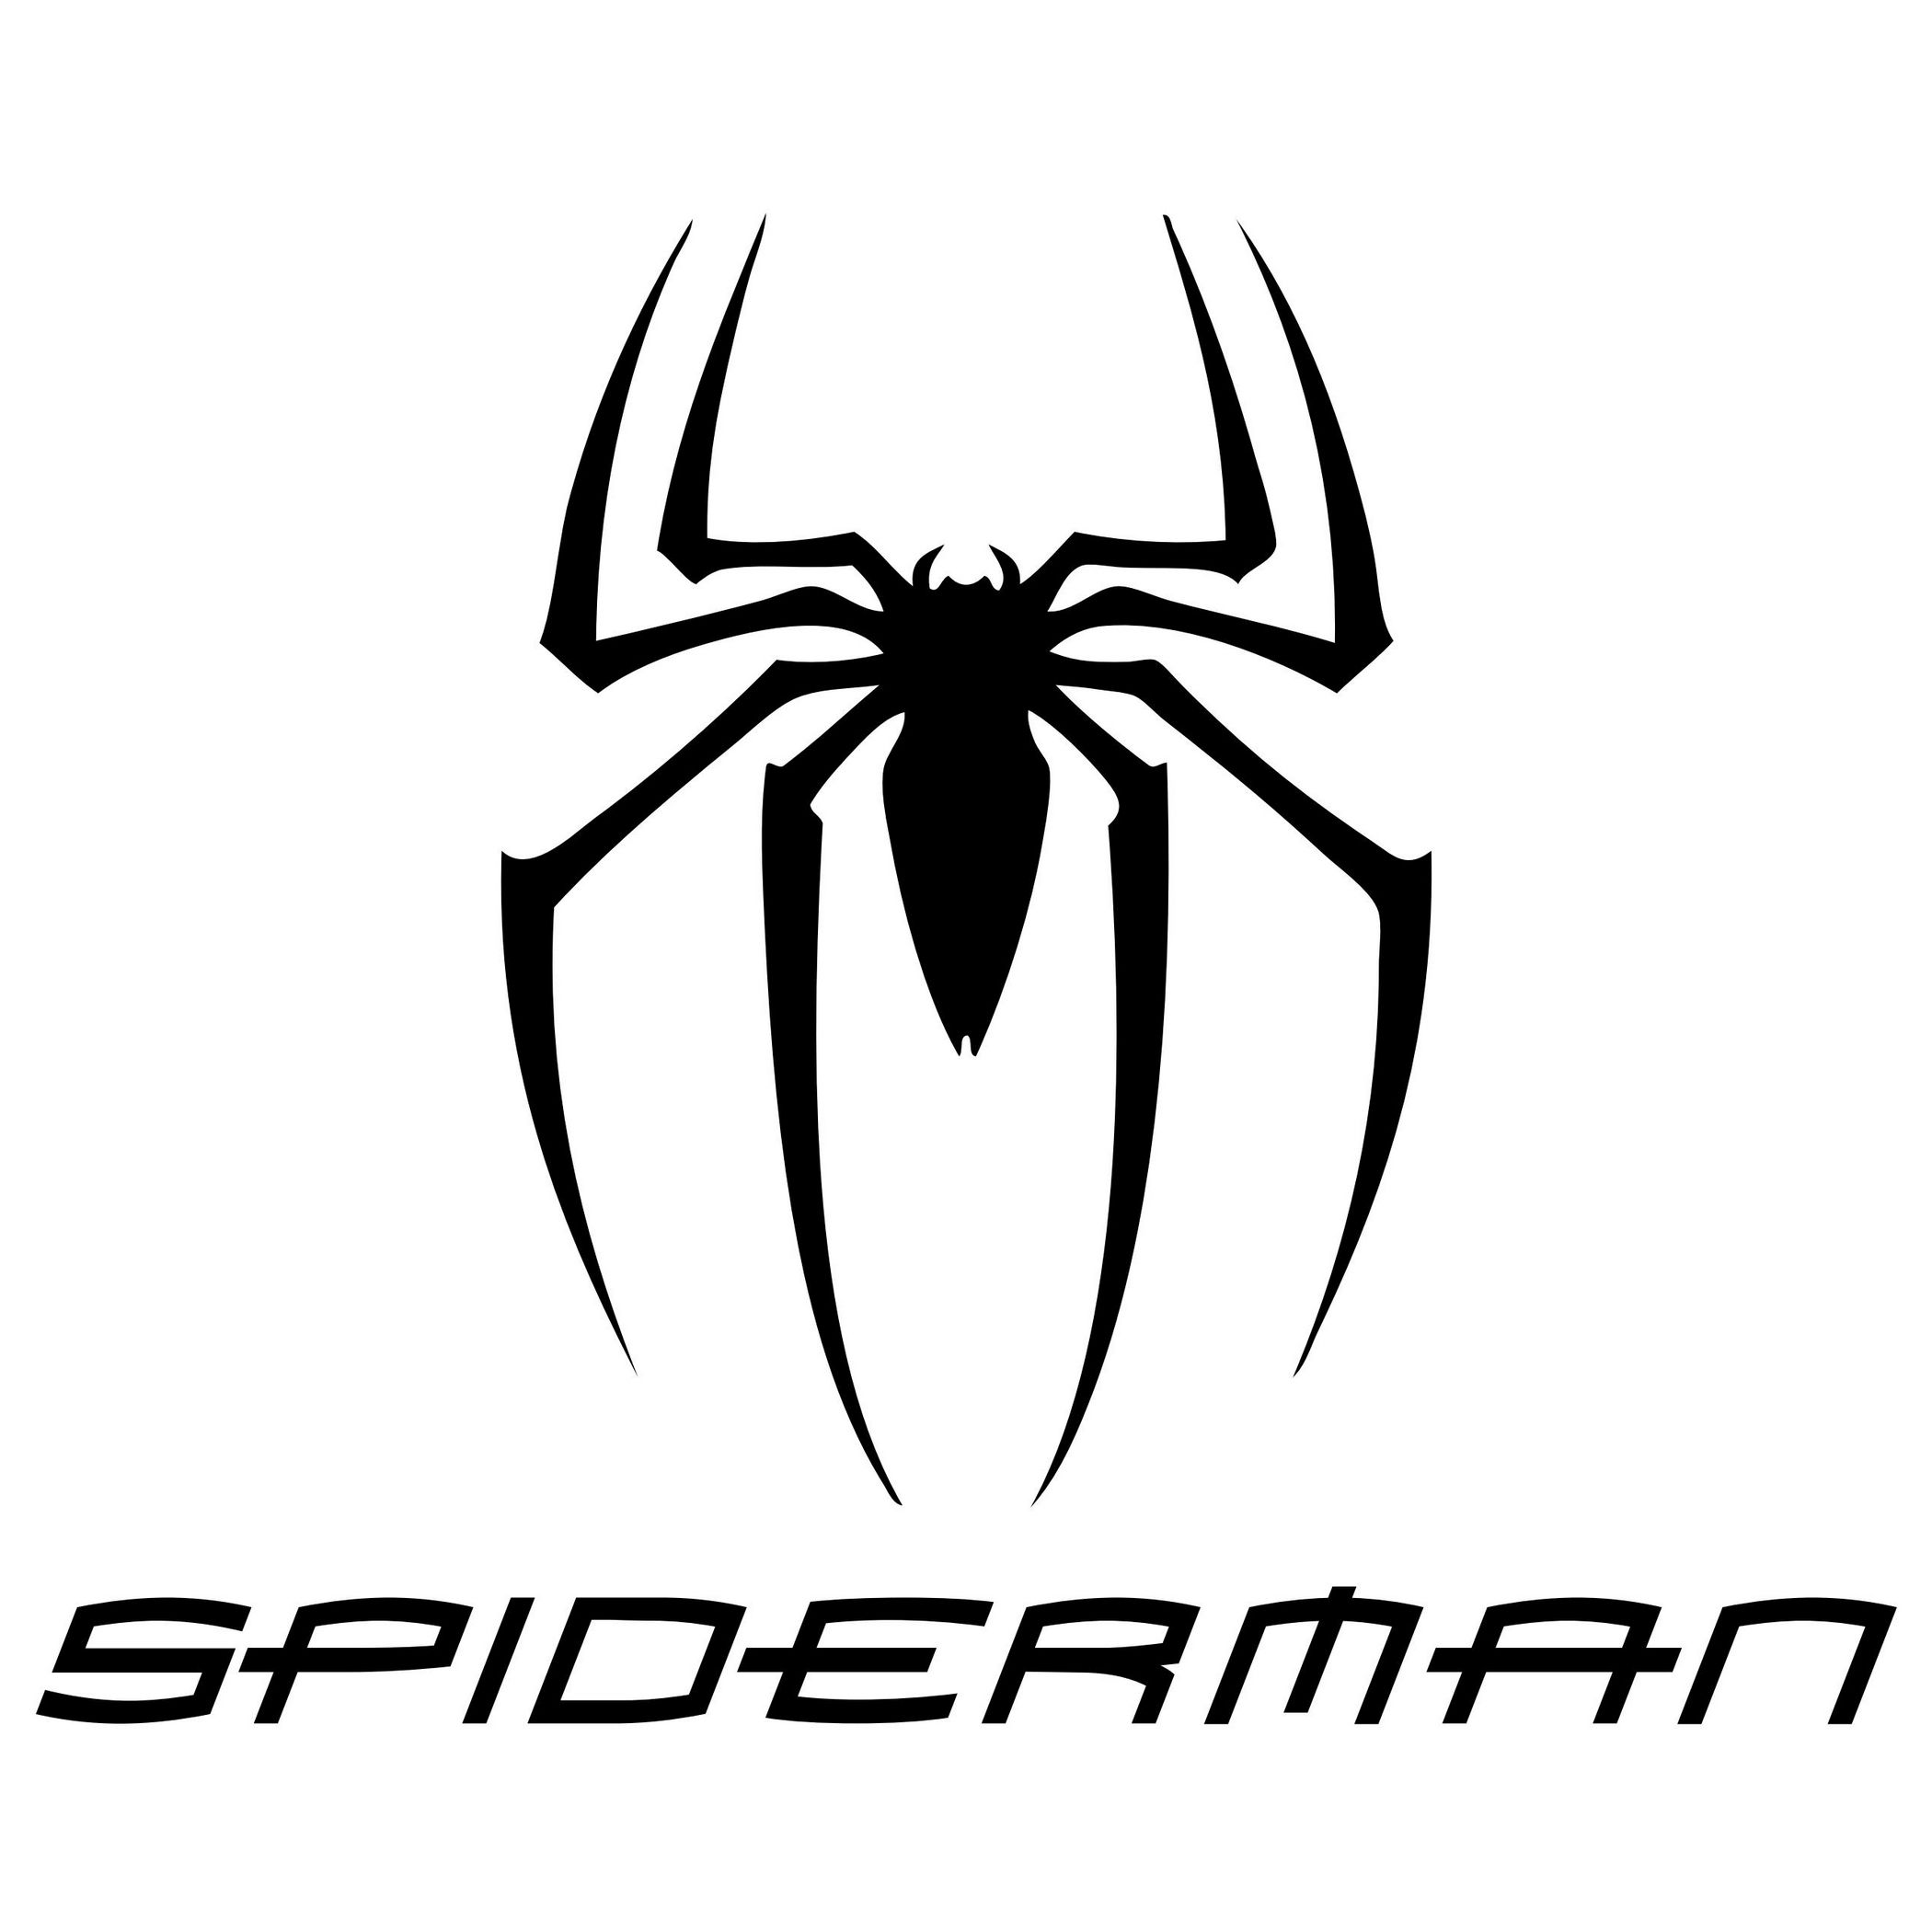 spider man logo video games pinterest man logo cricut and